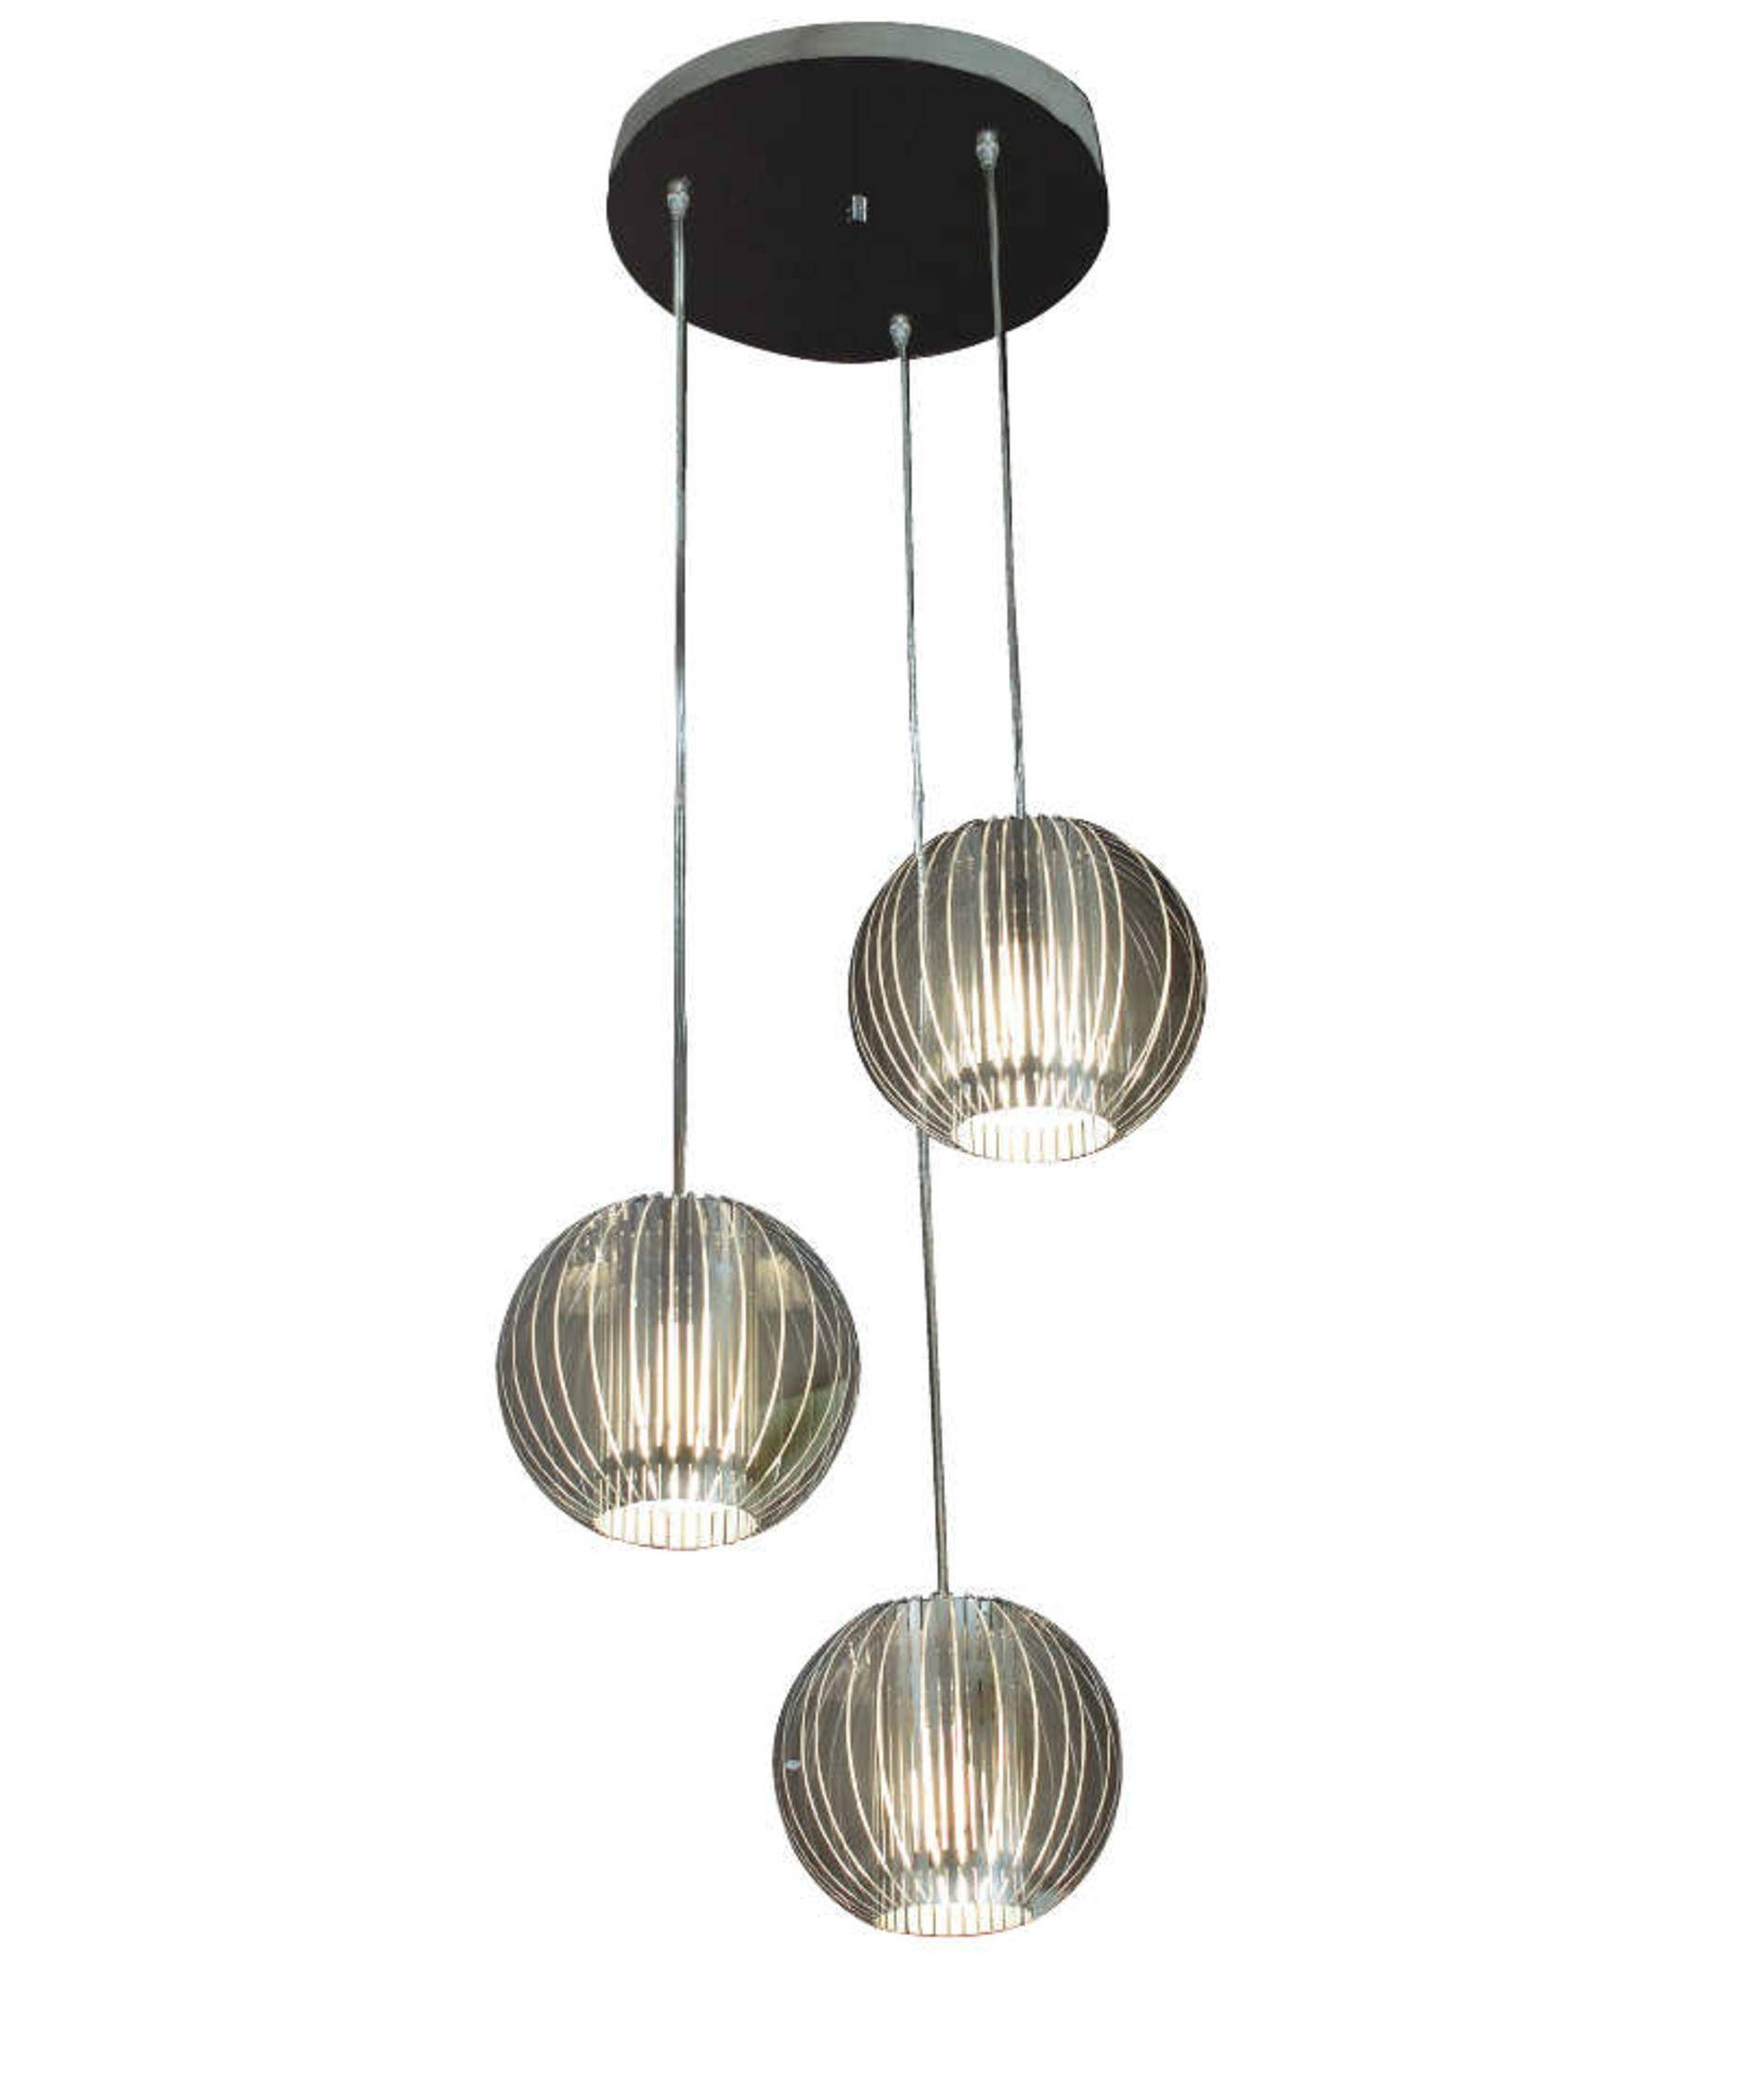 Trend Lighting Tp6300-3 Phoenix 14 Inch Wide 3 Light Multi Pendant within 3 Pendant Light Kits (Image 14 of 15)